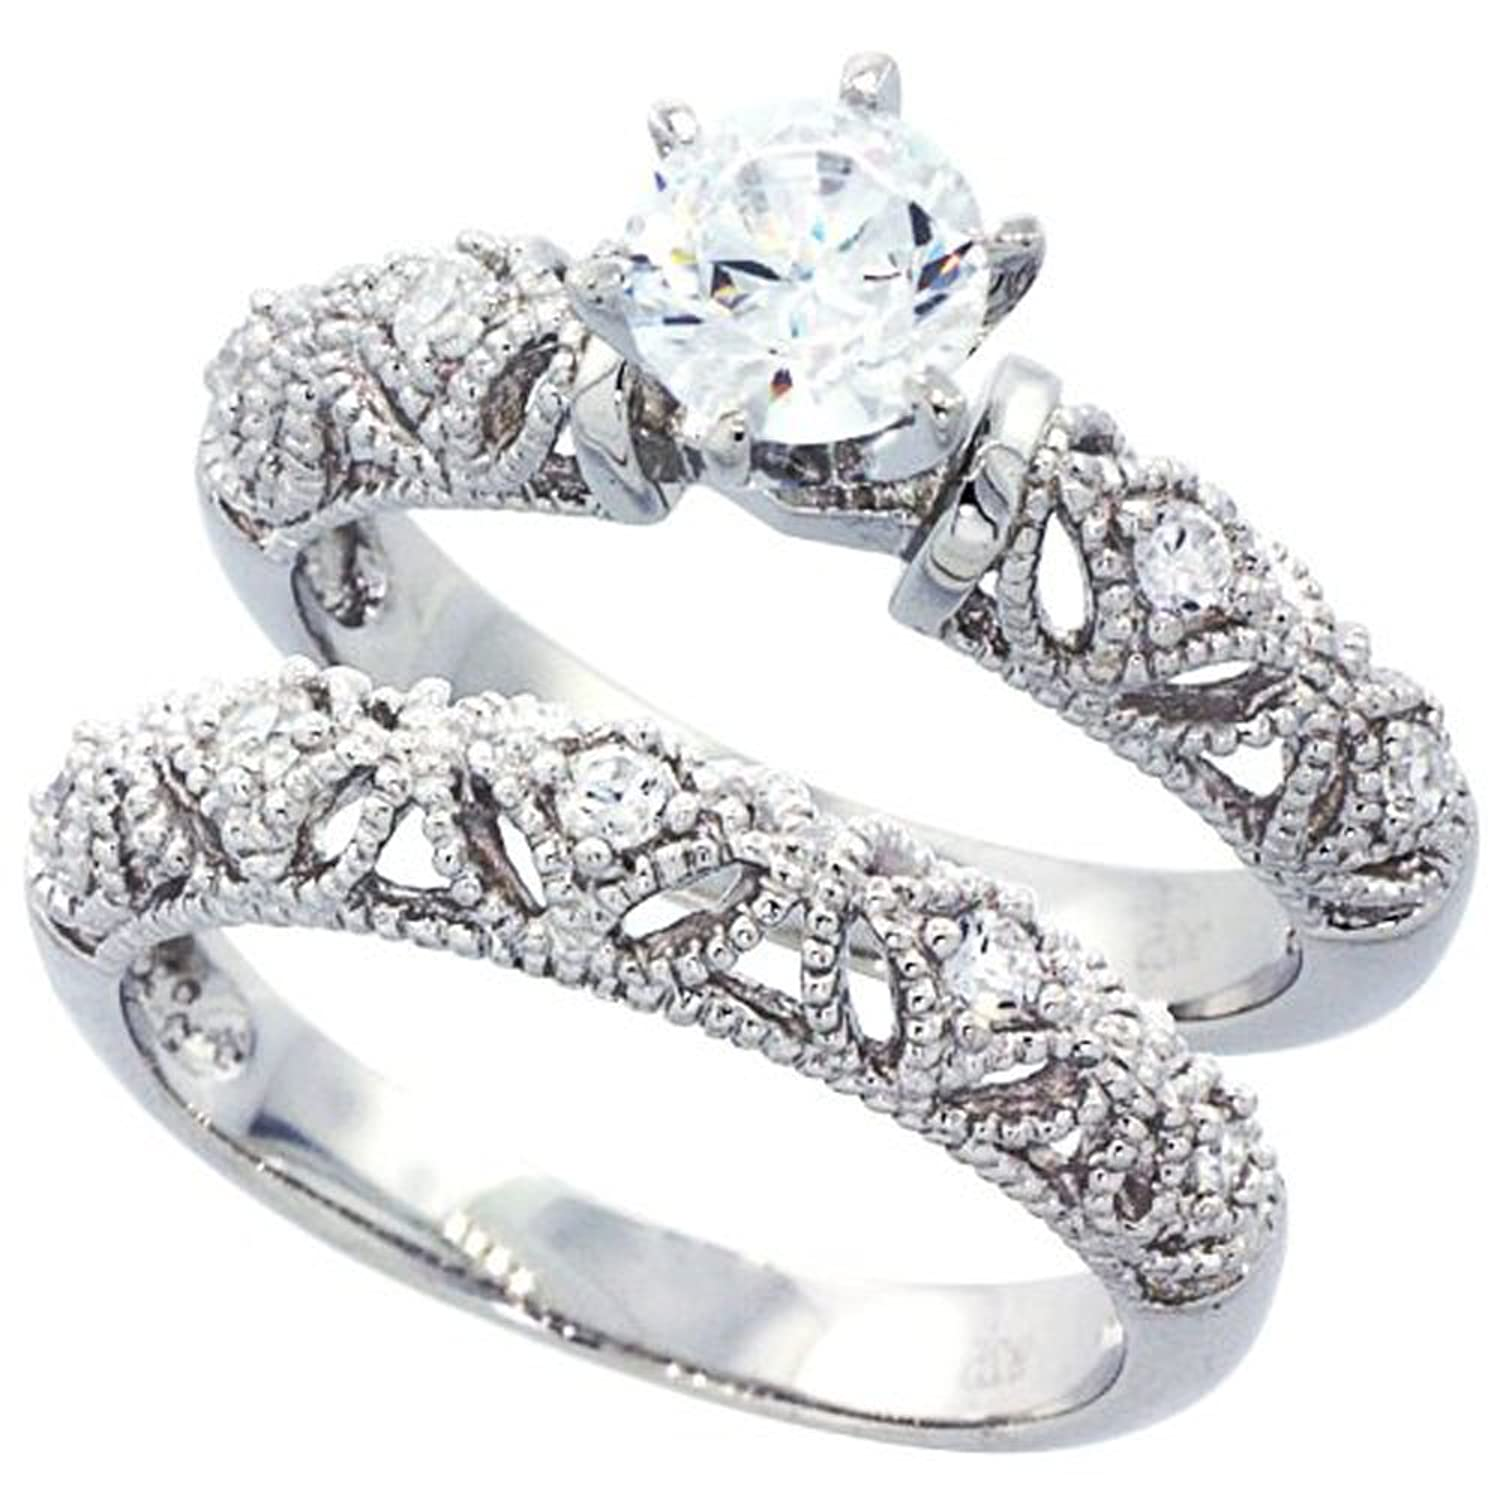 amazoncom sterling silver wedding ring set round cz engagement ring 2pcs vintage bridal sets size 5 to 10 jewelry - Cheap Sterling Silver Wedding Rings